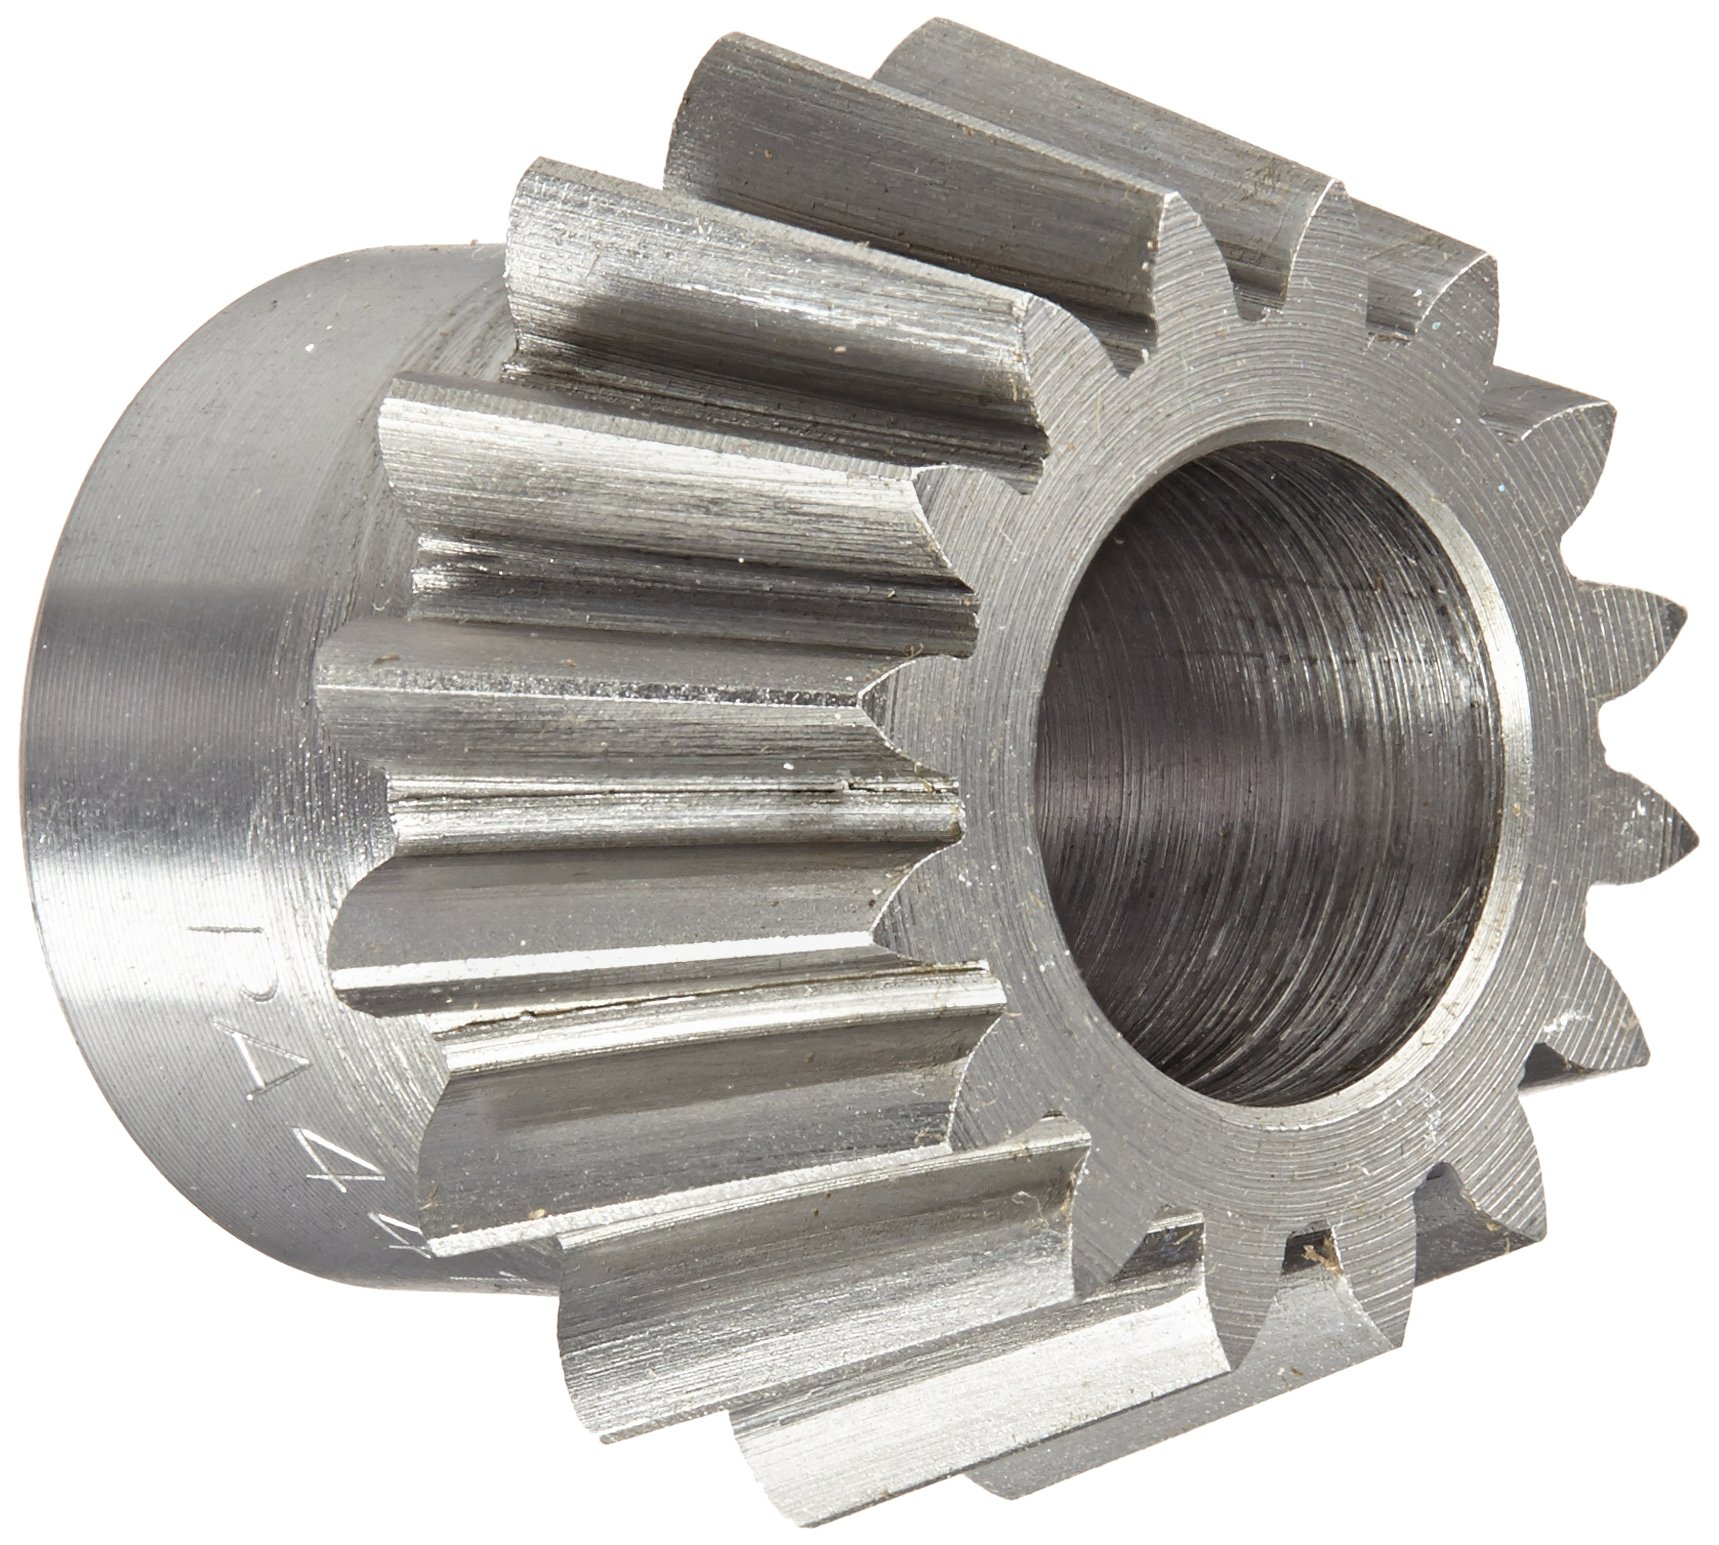 Boston Gear PA4416Y-P Bevel Pinion Gear, 4:1 Ratio, 0.500'' Bore, 16 Pitch, 16 Teeth, 20 Degree Pressure Angle, Straight Bevel, Steel